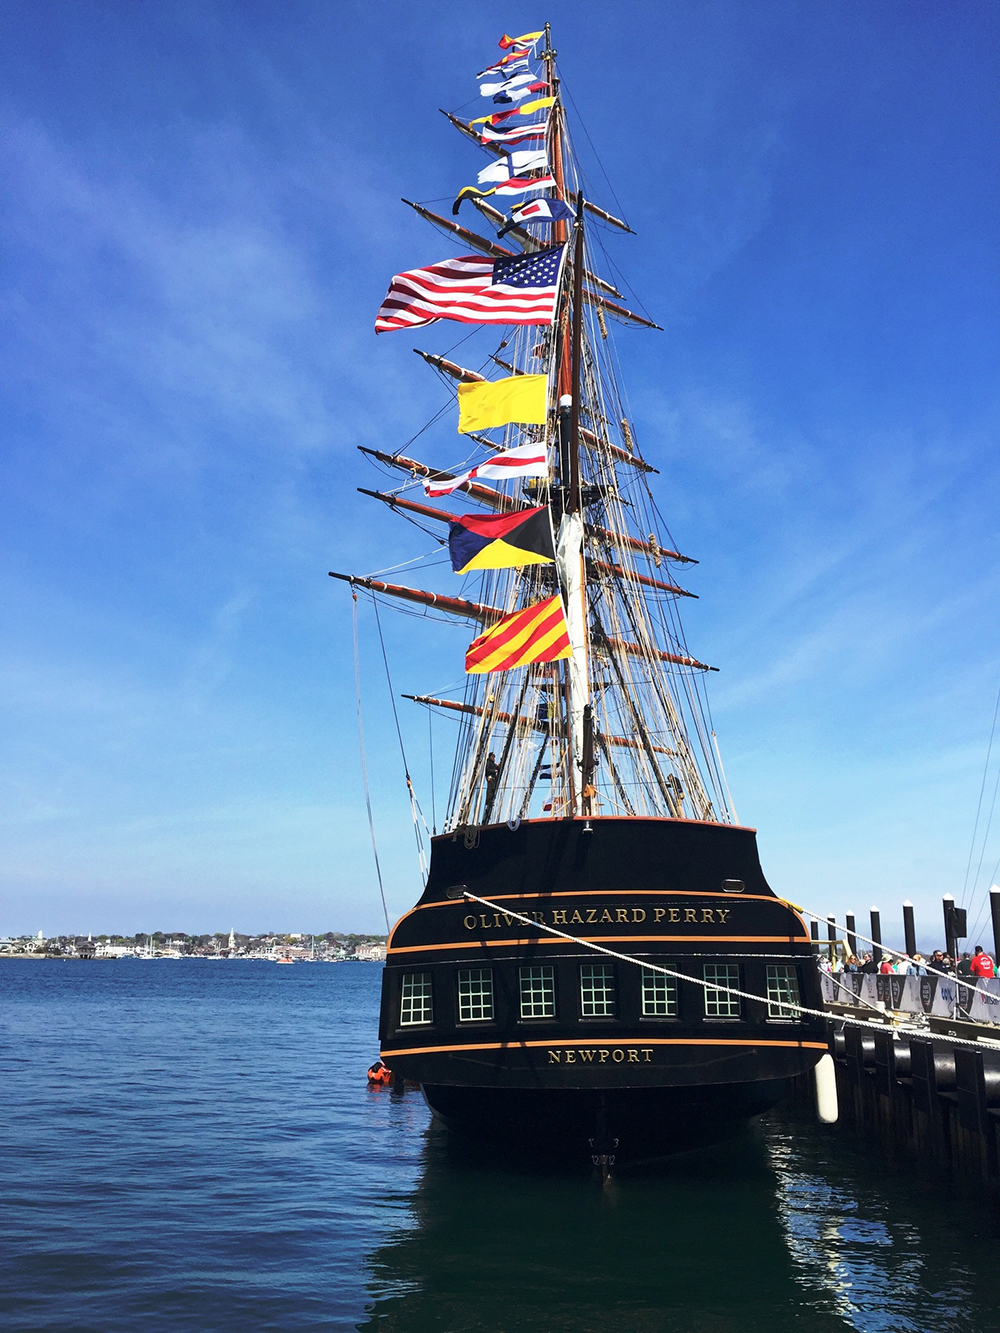 Oliver-Hazard-Perry-Seafood-Festival-The-Chanler.jpg